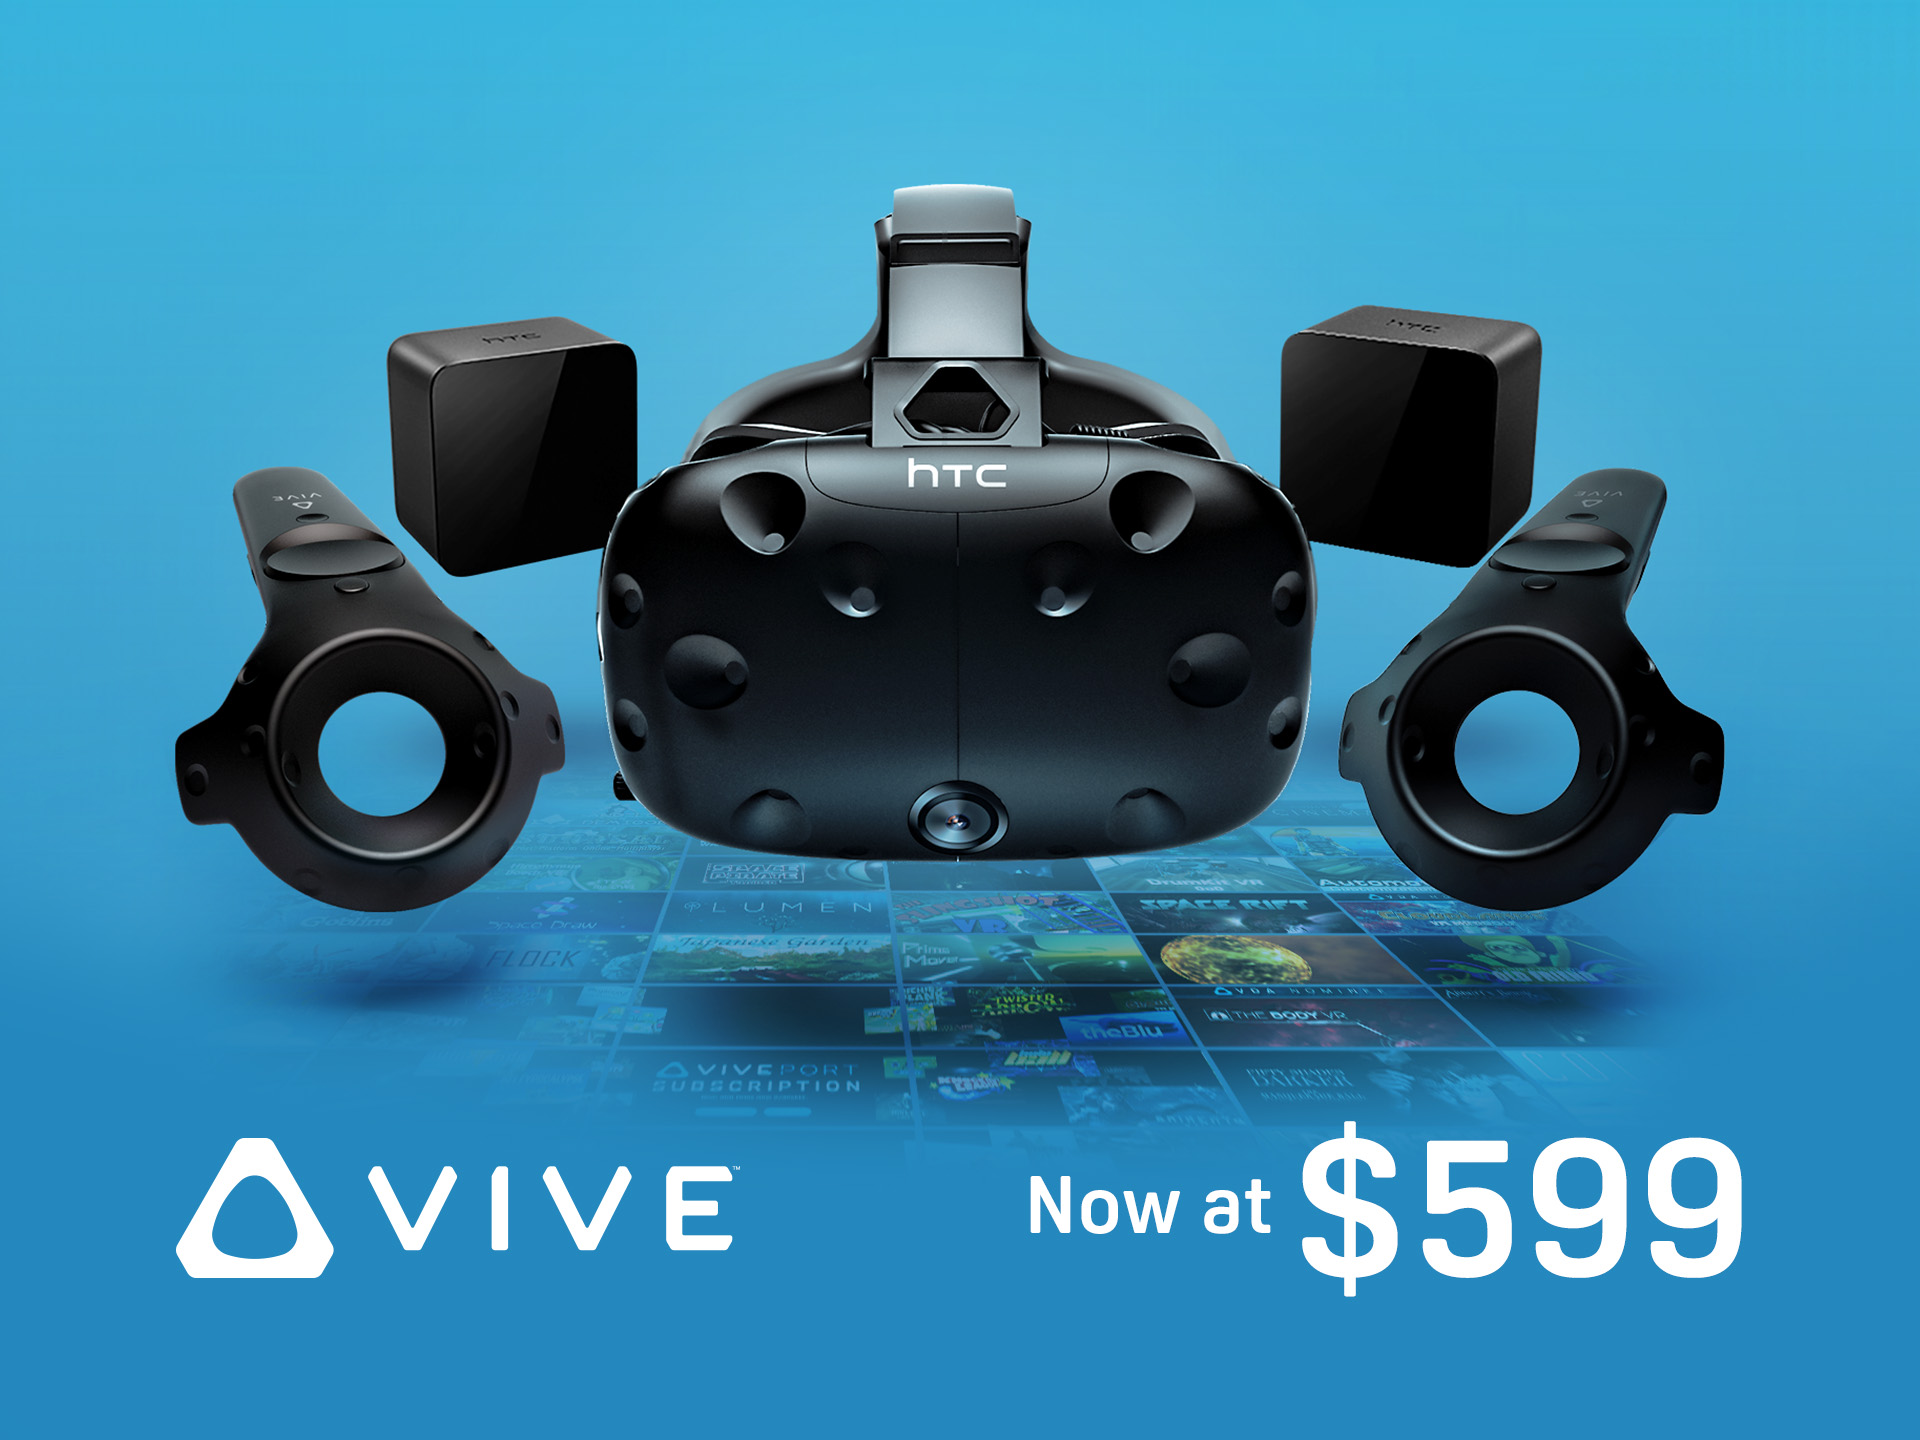 HTC Vive Prices Slashed by $200 in Competition with Oculus Rift VR